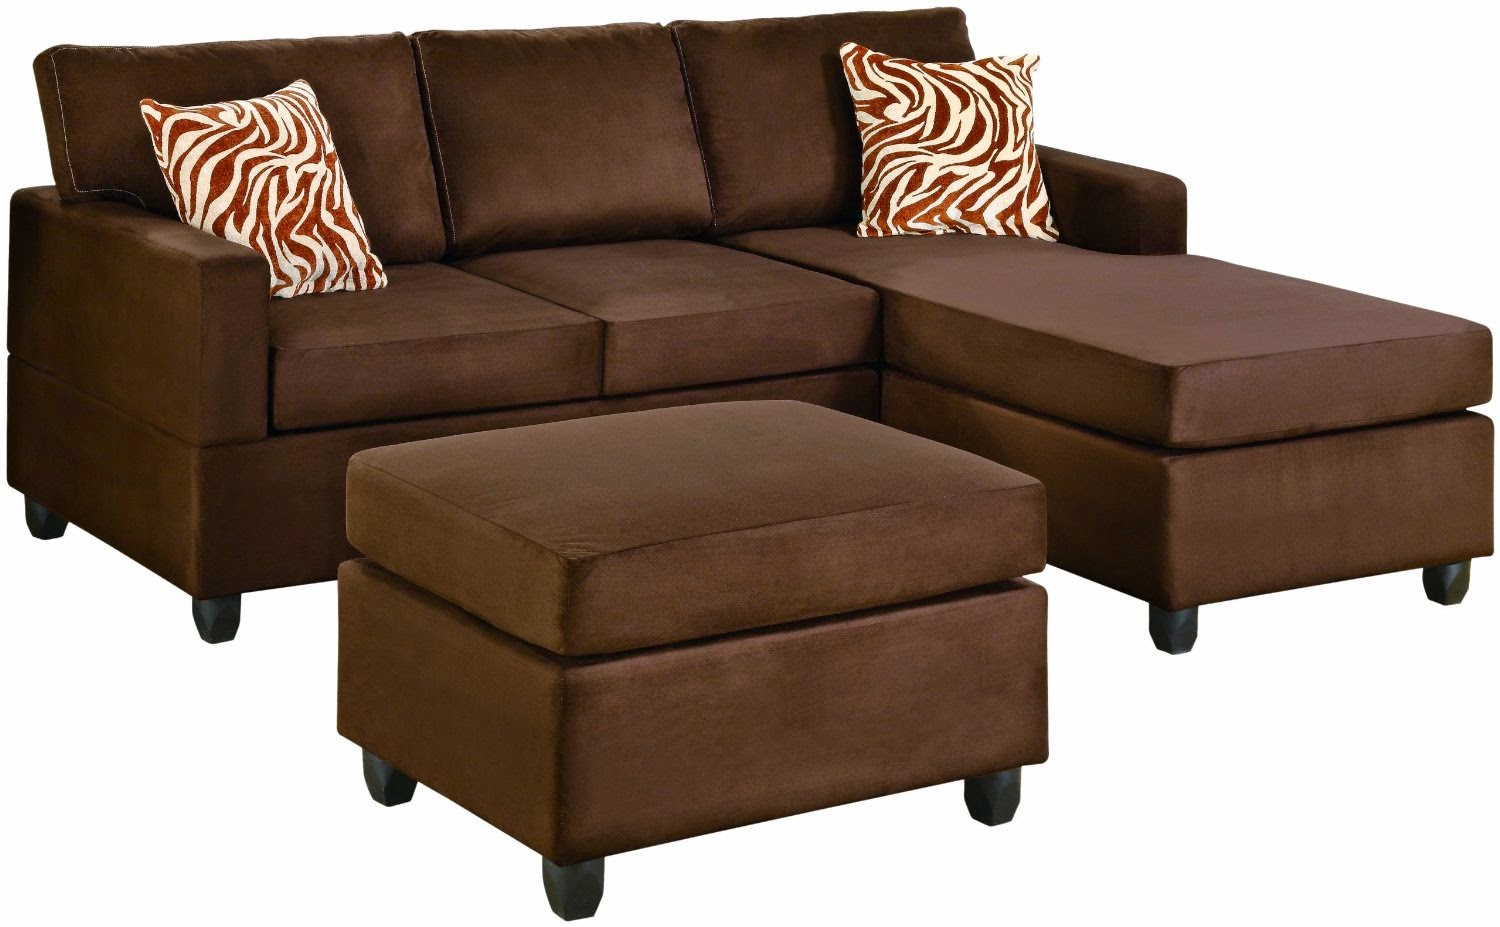 Microfiber Sectional Couch With Chaise